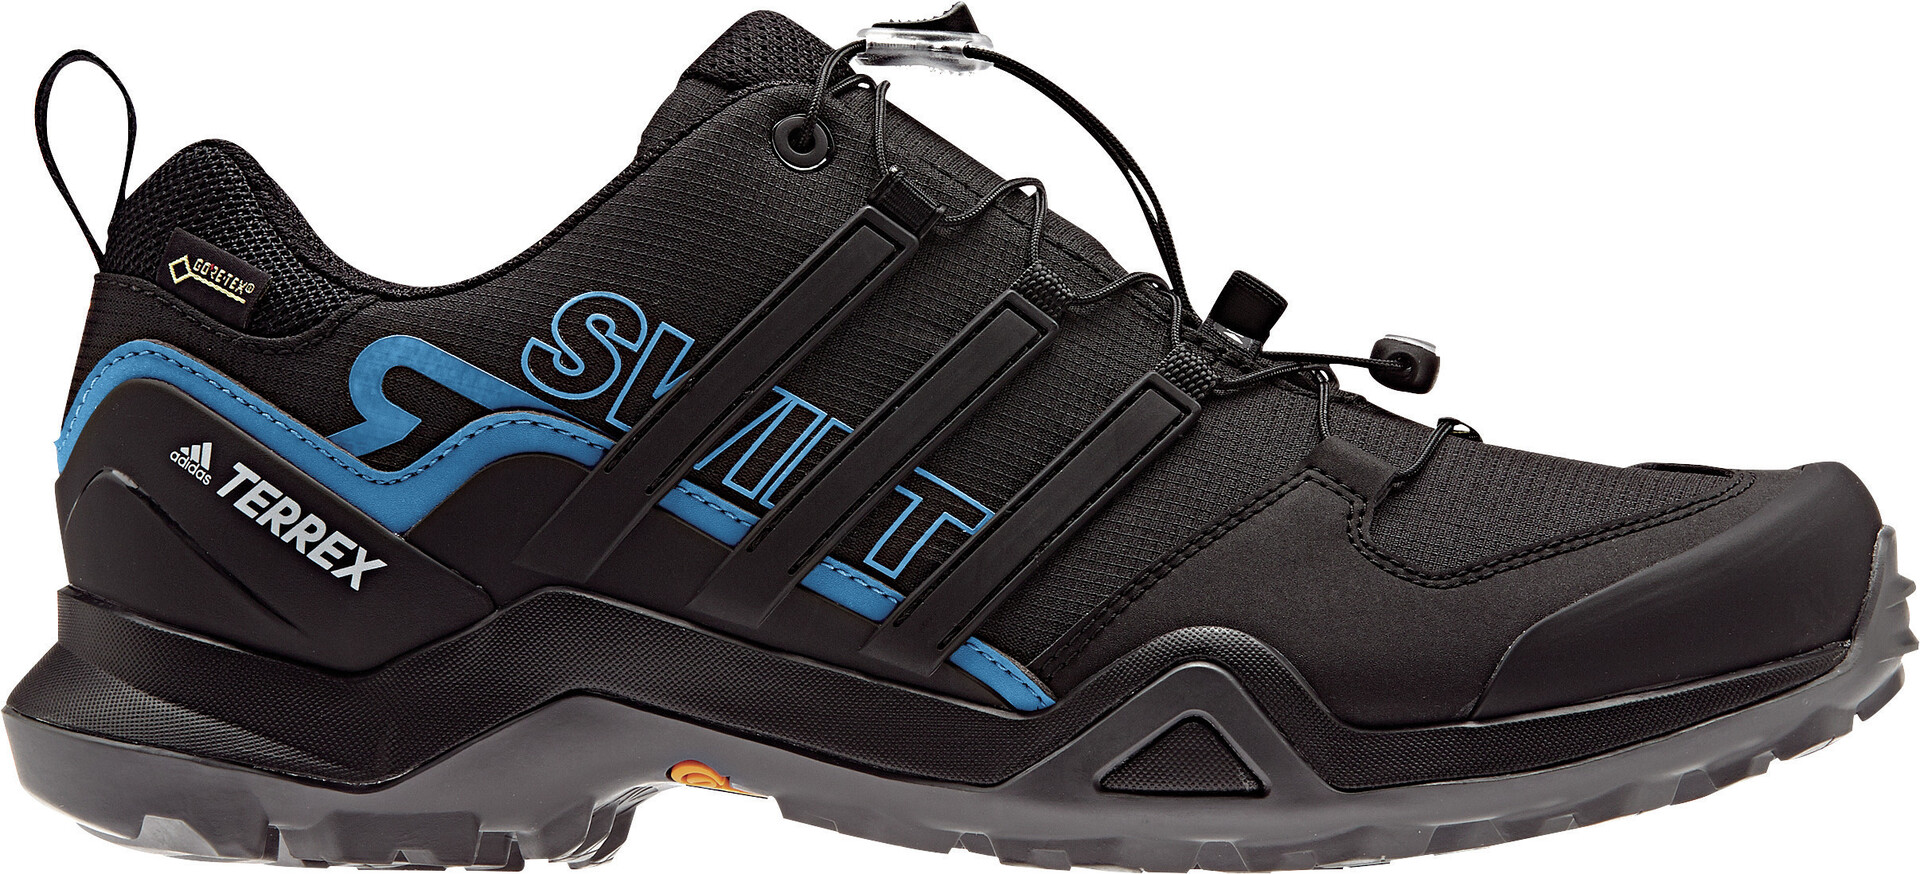 adidas Terrex Swift R2 Mid GTX Chaussures de randonnée Core Black Core Black Core Blue | 7,5 (UK)